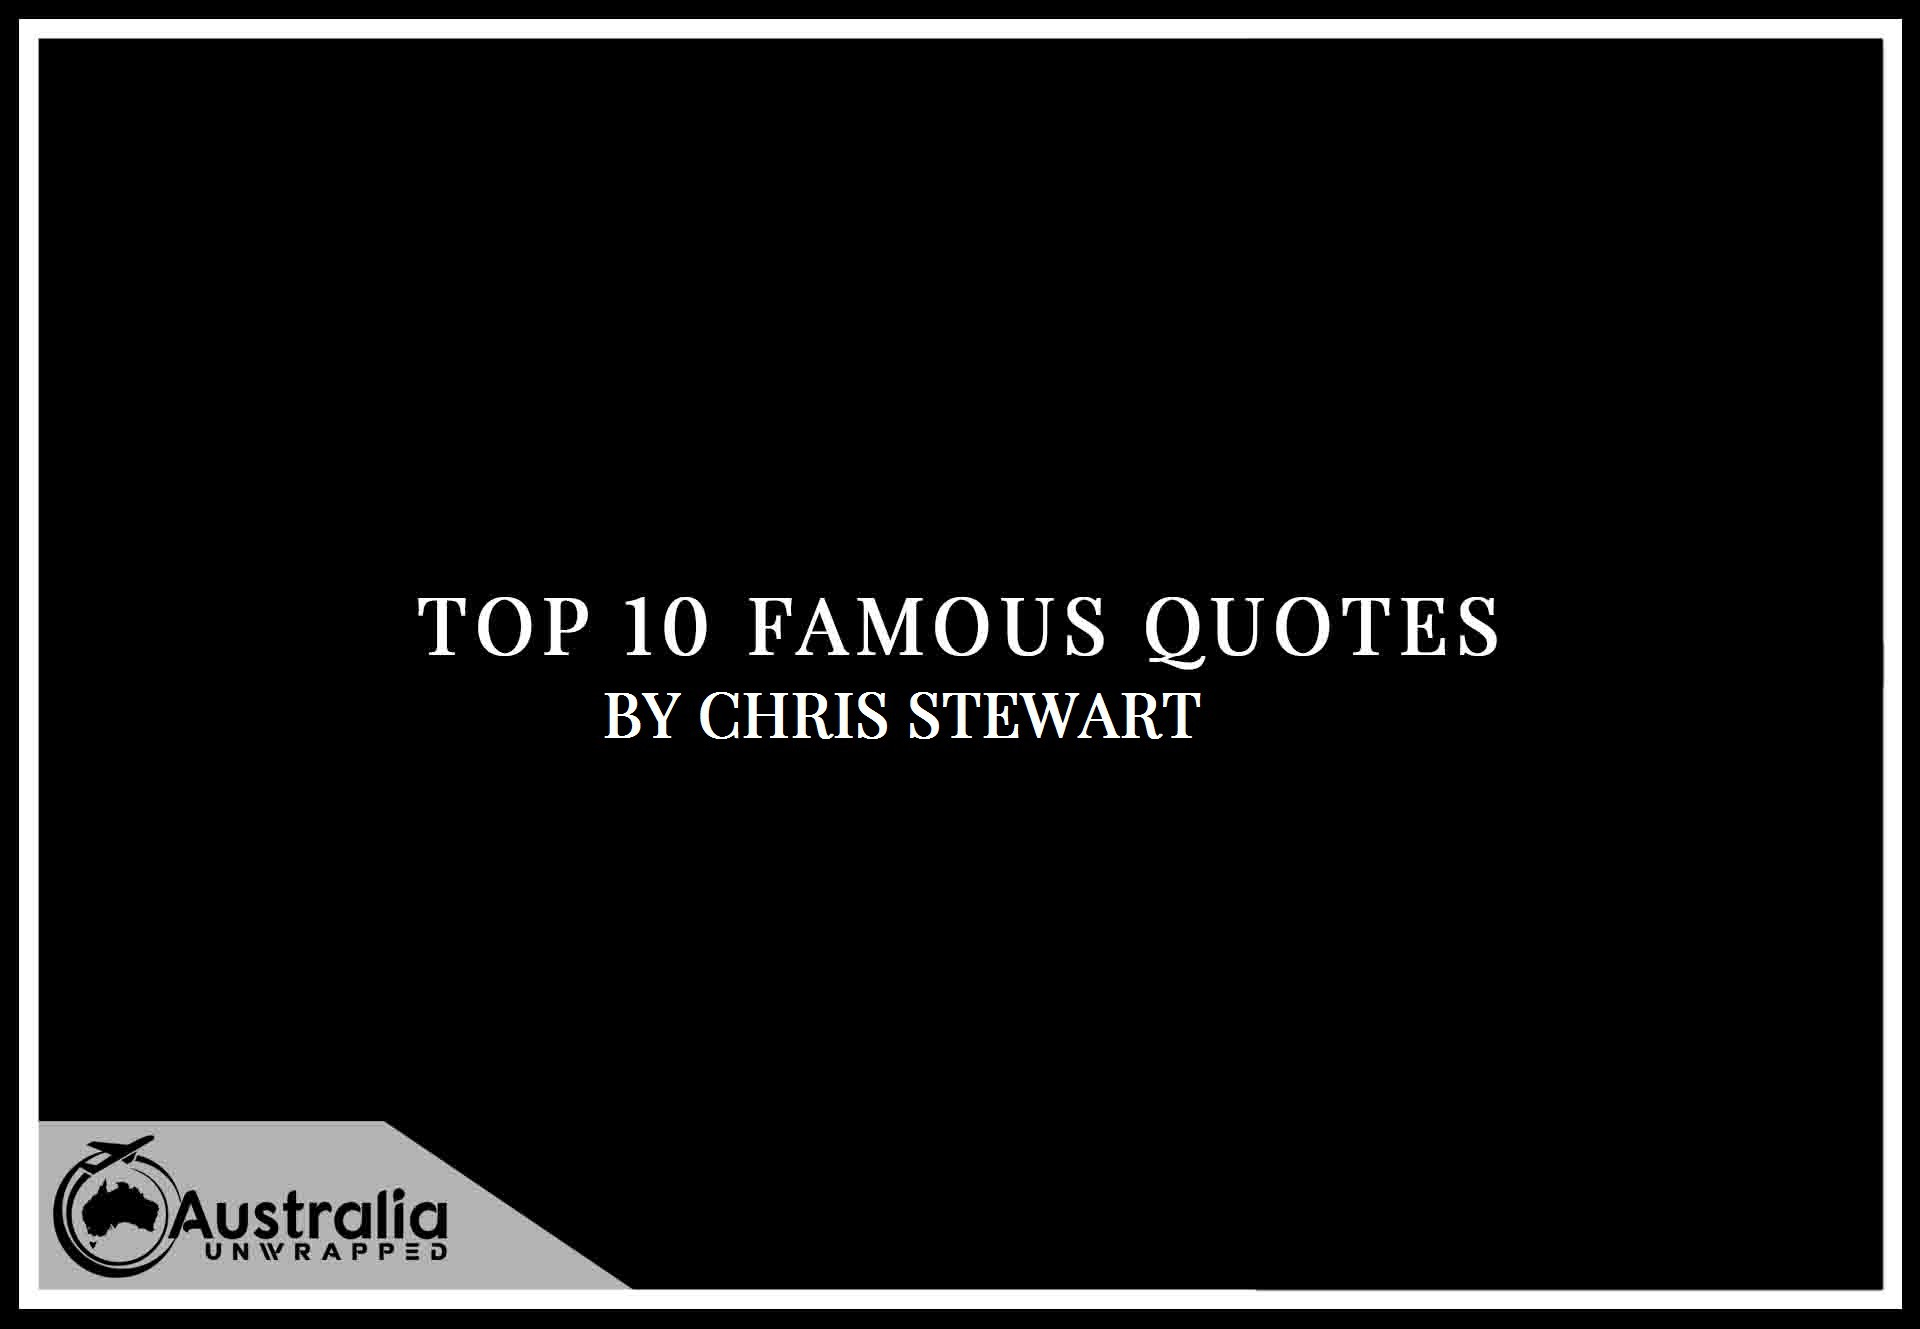 Chris Stewart's Top 10 Popular and Famous Quotes